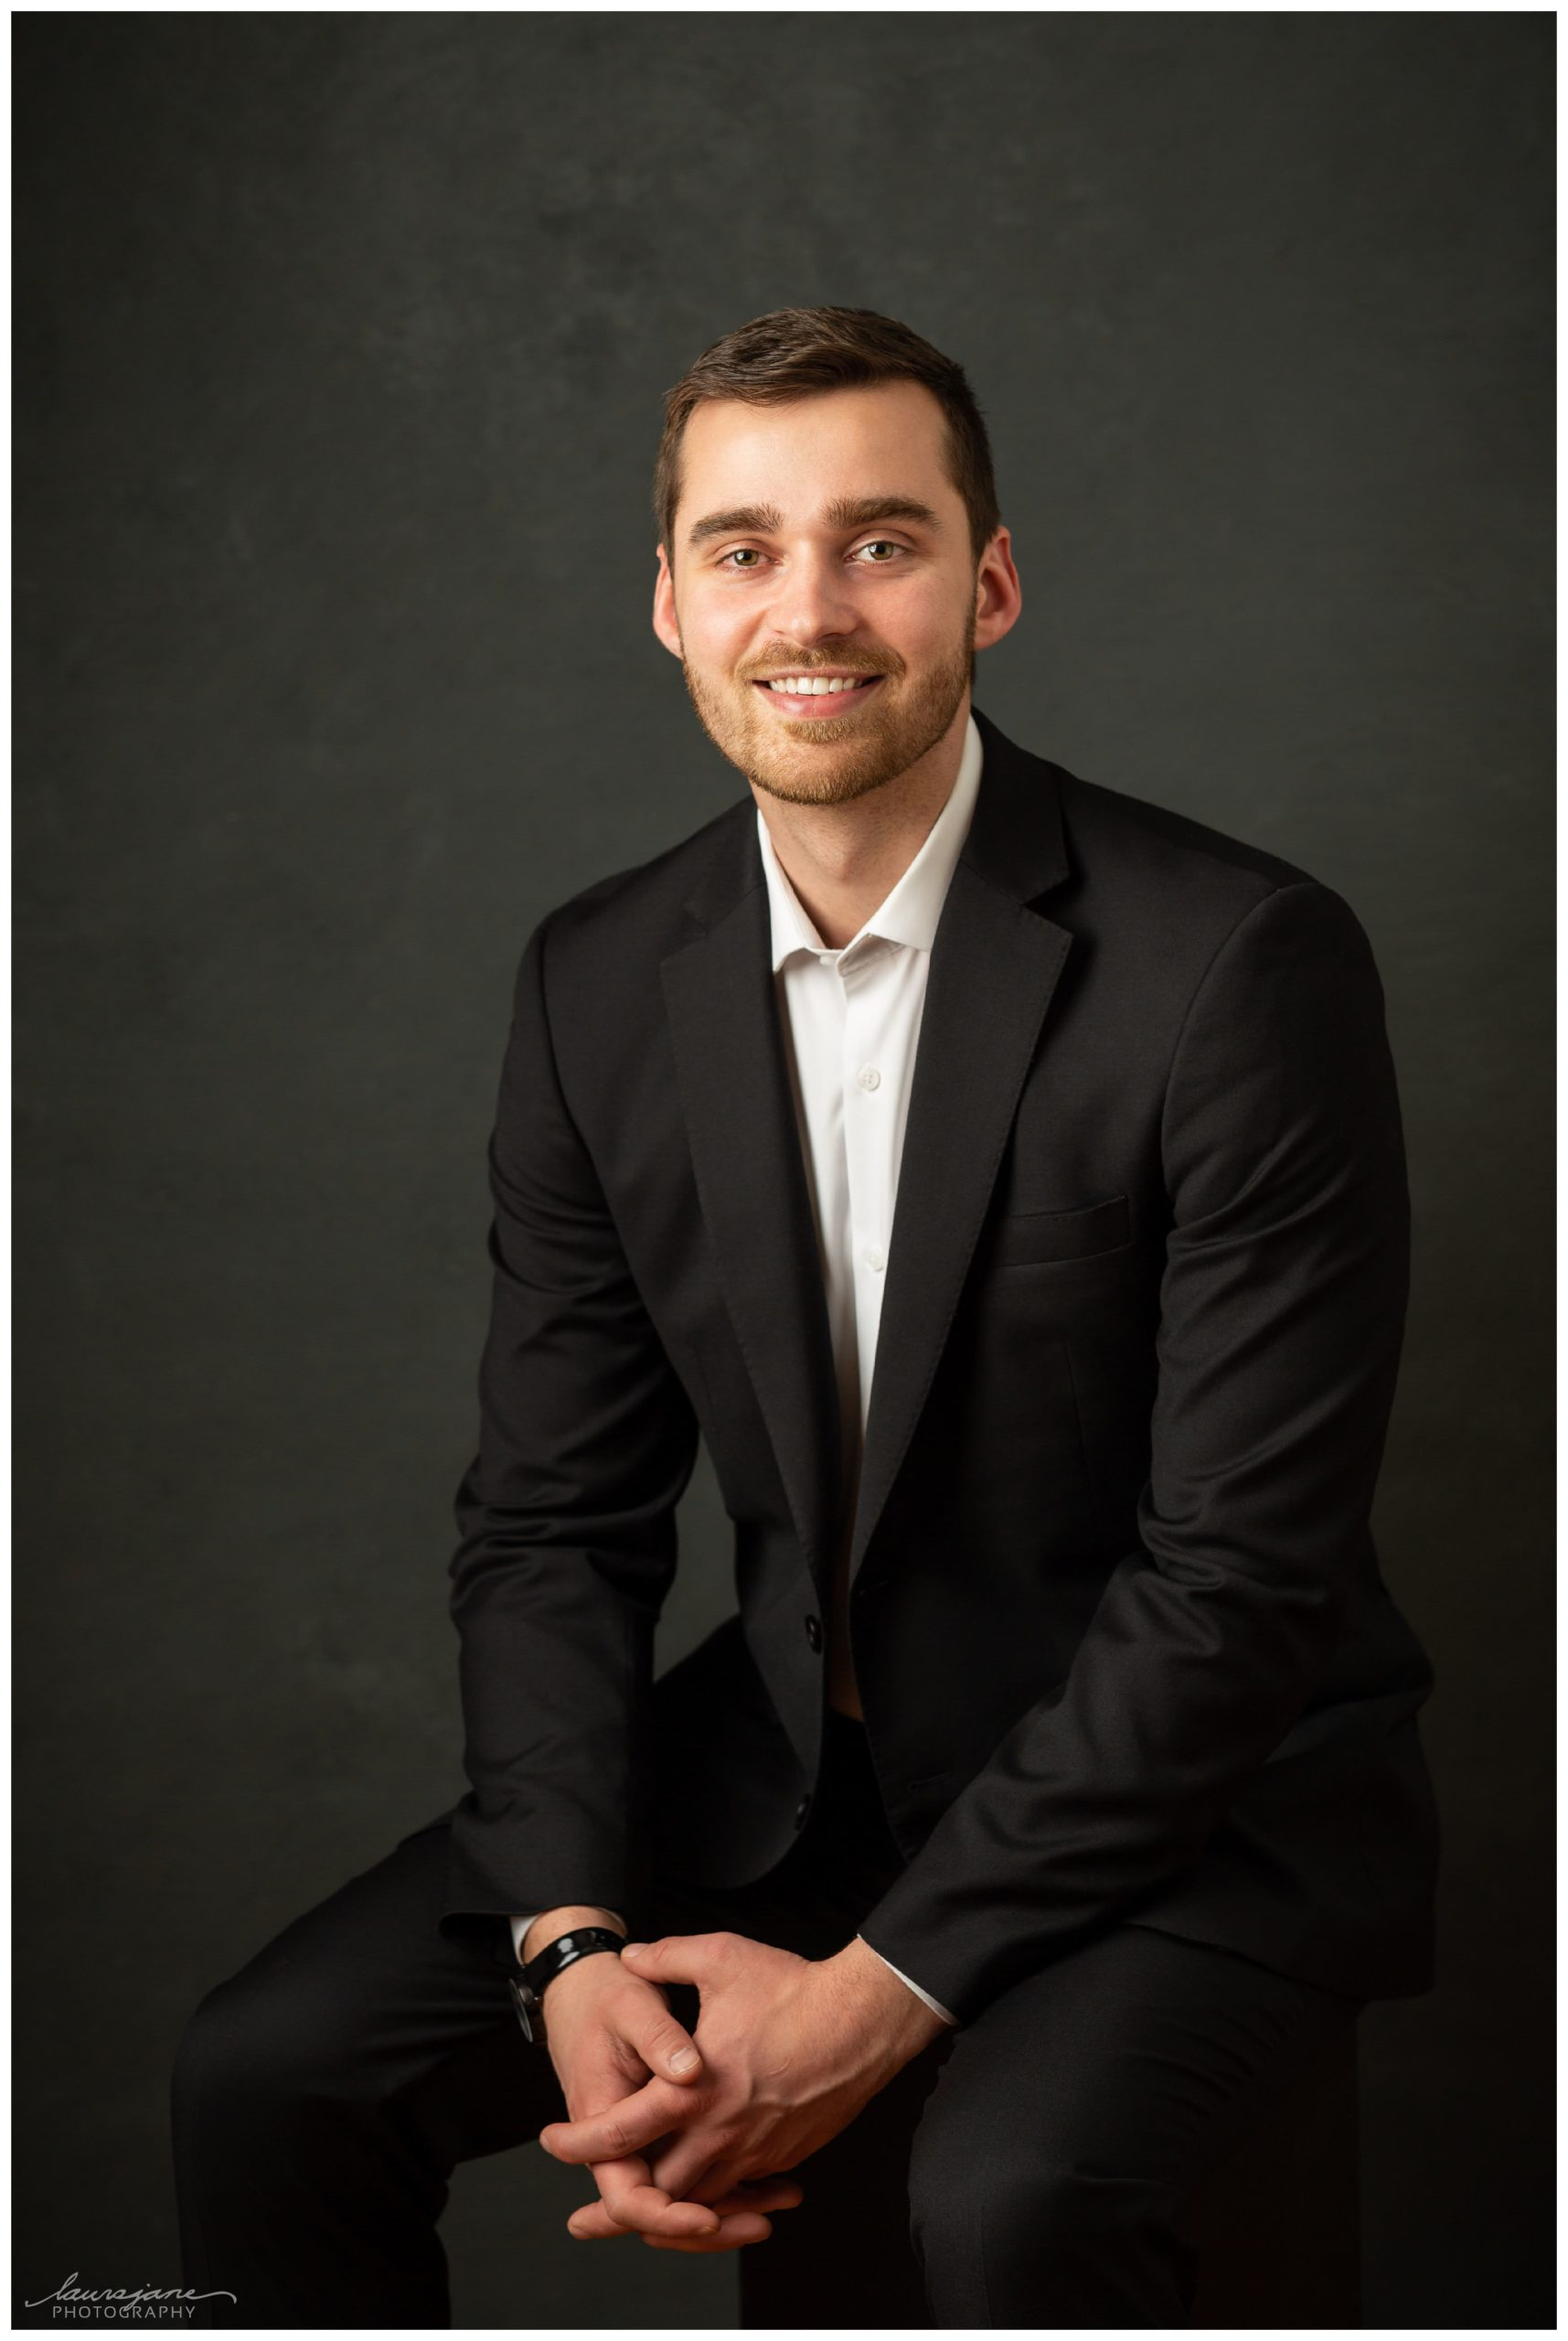 Professional business portrait by Wisconsin photographer